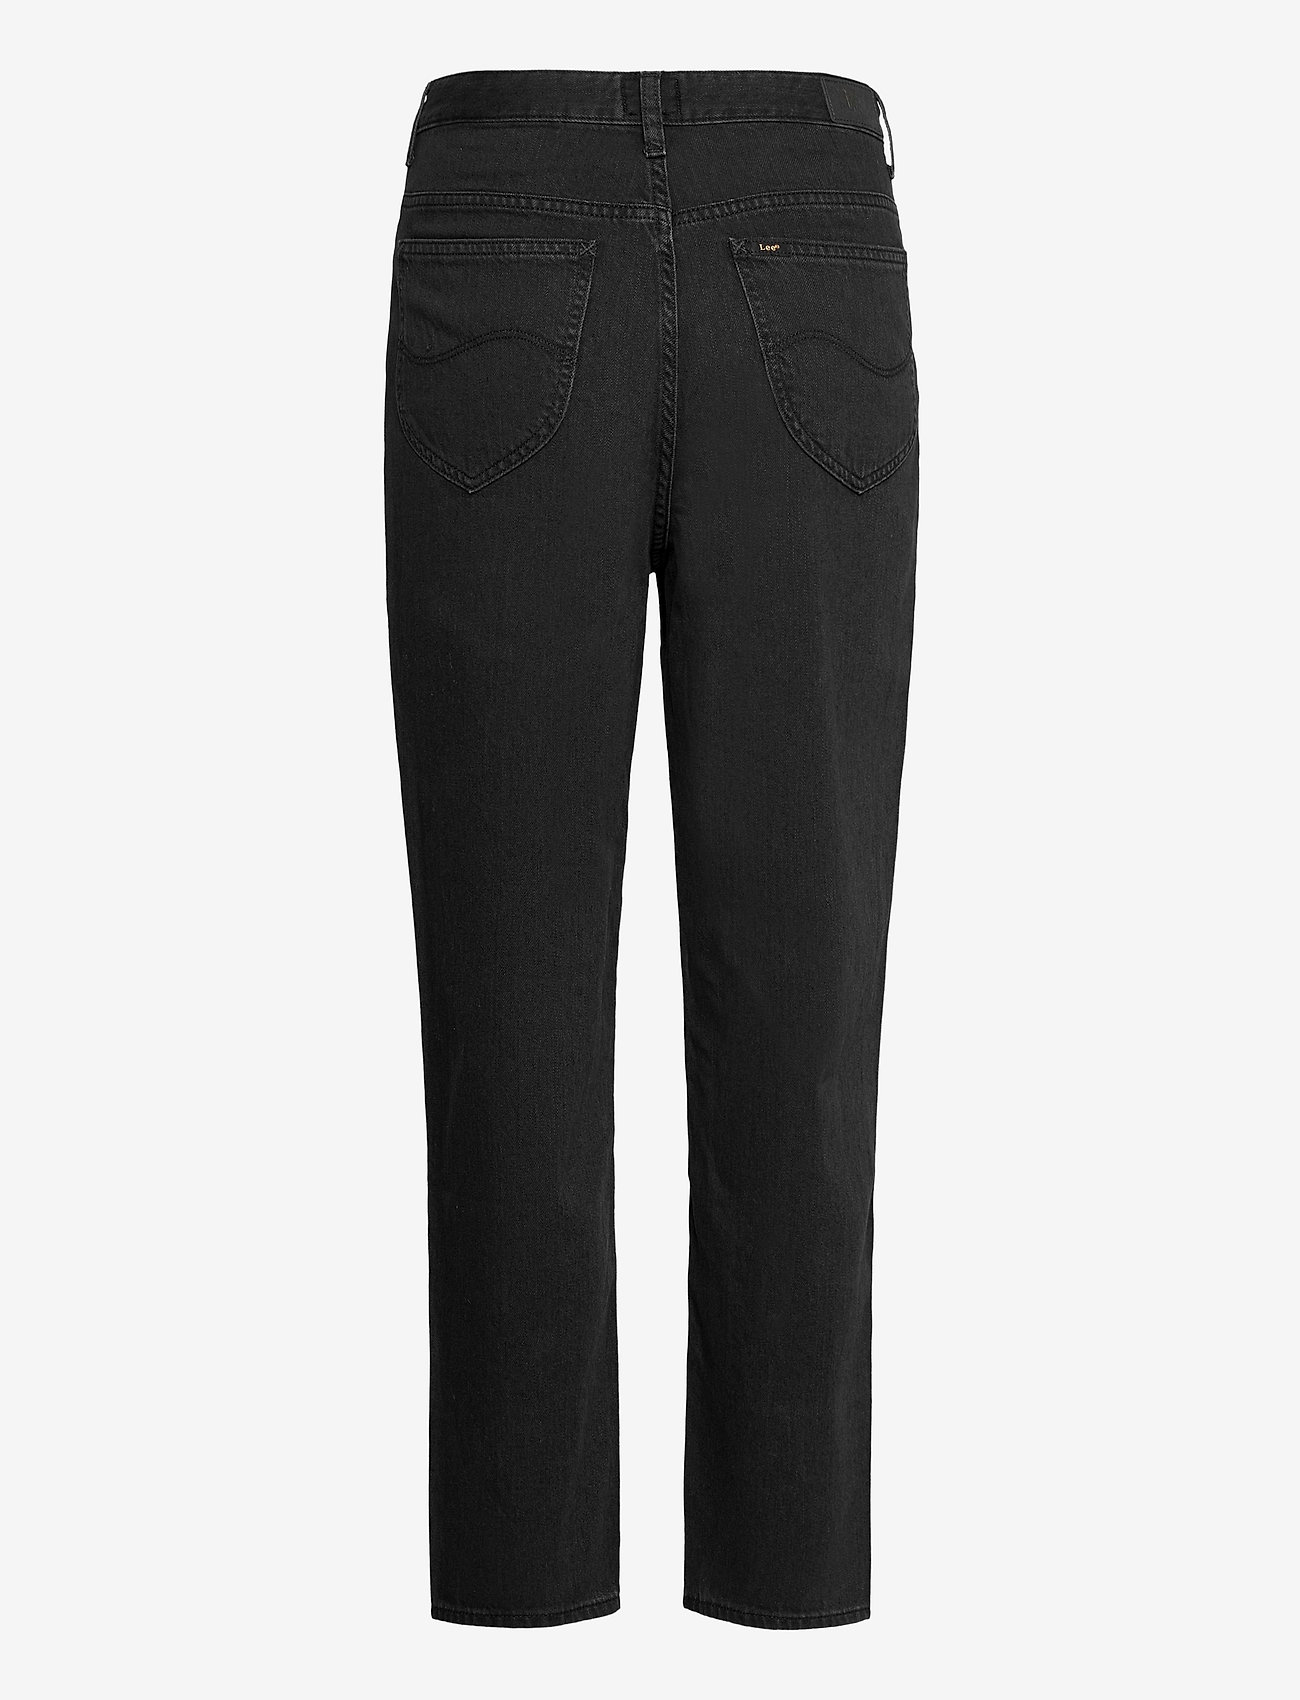 Lee Jeans - STELLA TAPERED - mom jeans - black duns - 1